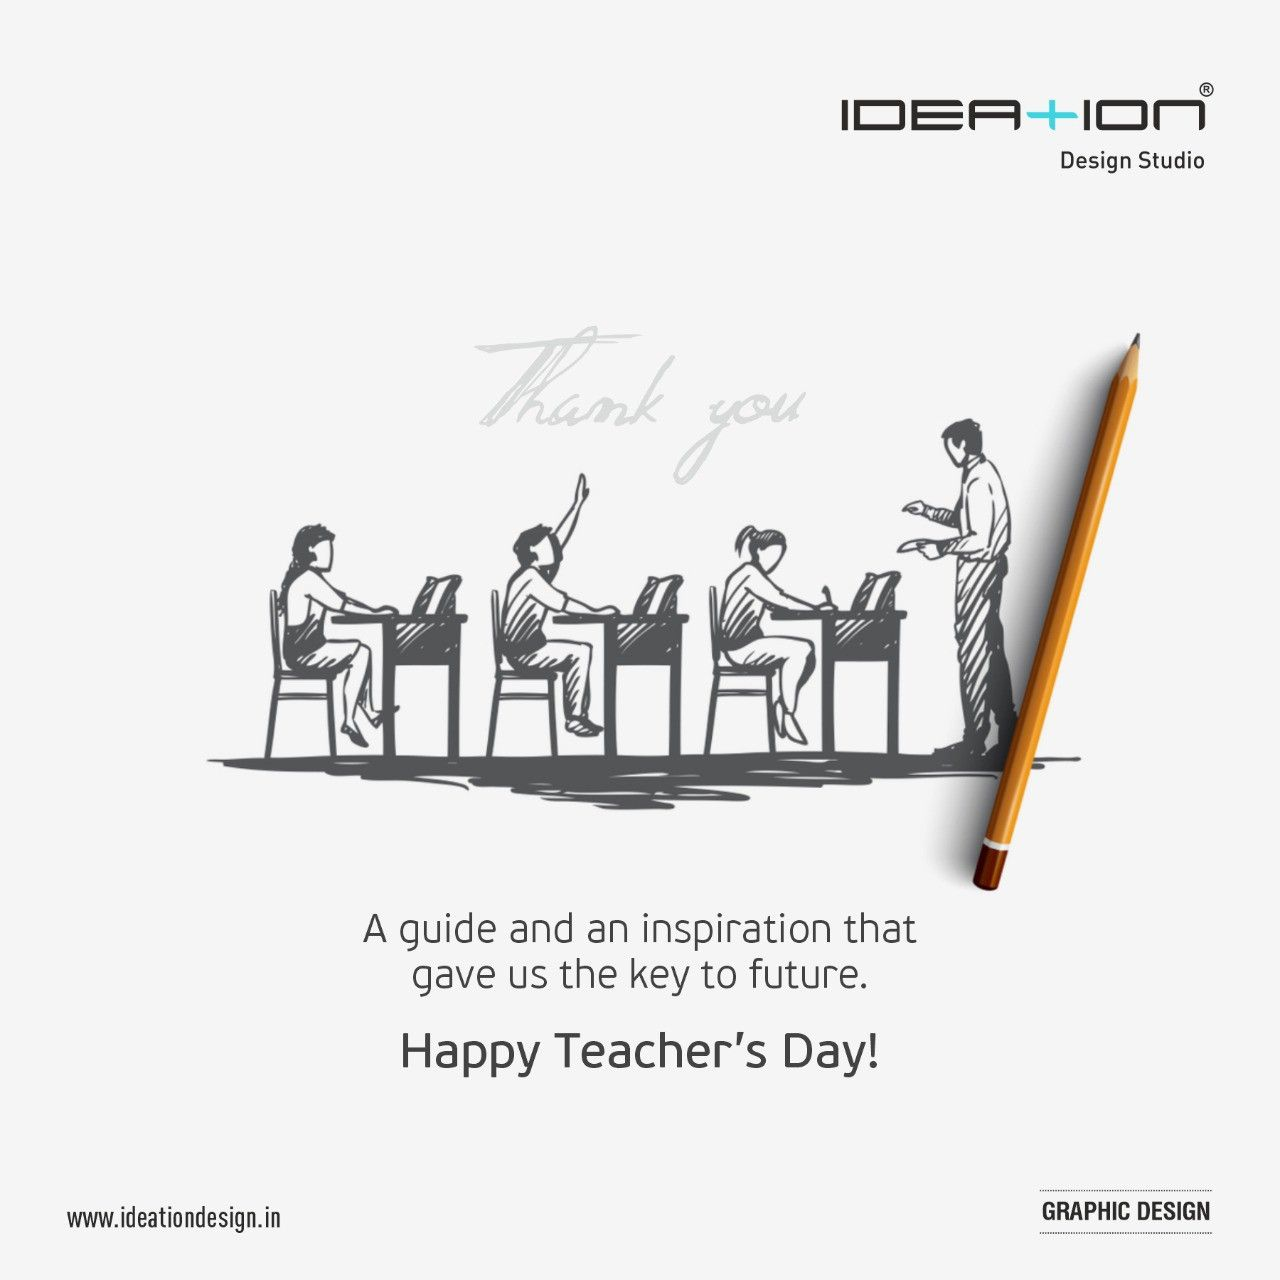 Happy Teachers Day A Guide And Inspiration That Give Us The Key To Future In 2020 Happy Teachers Day Teachers Day Teacher